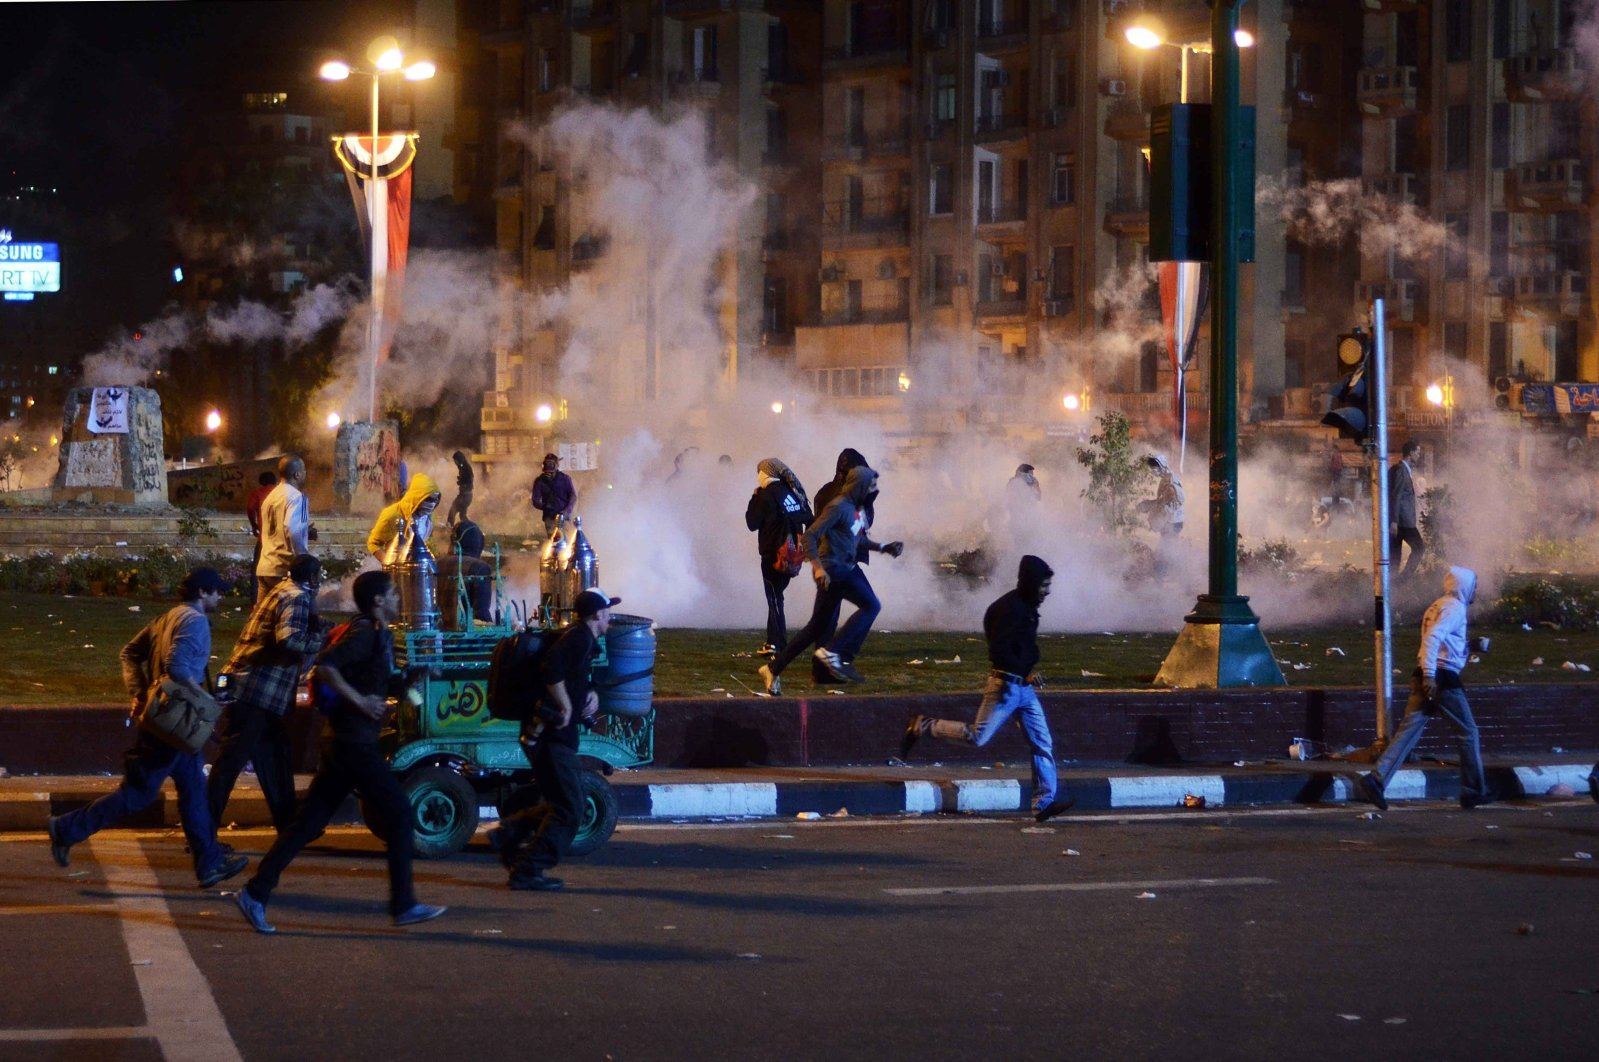 Egyptian anti-military demonstrators run for cover from tear gas fired by riot police during clashes in Tahrir Square in Cairo on Nov. 19, 2013. (AFP Photo)